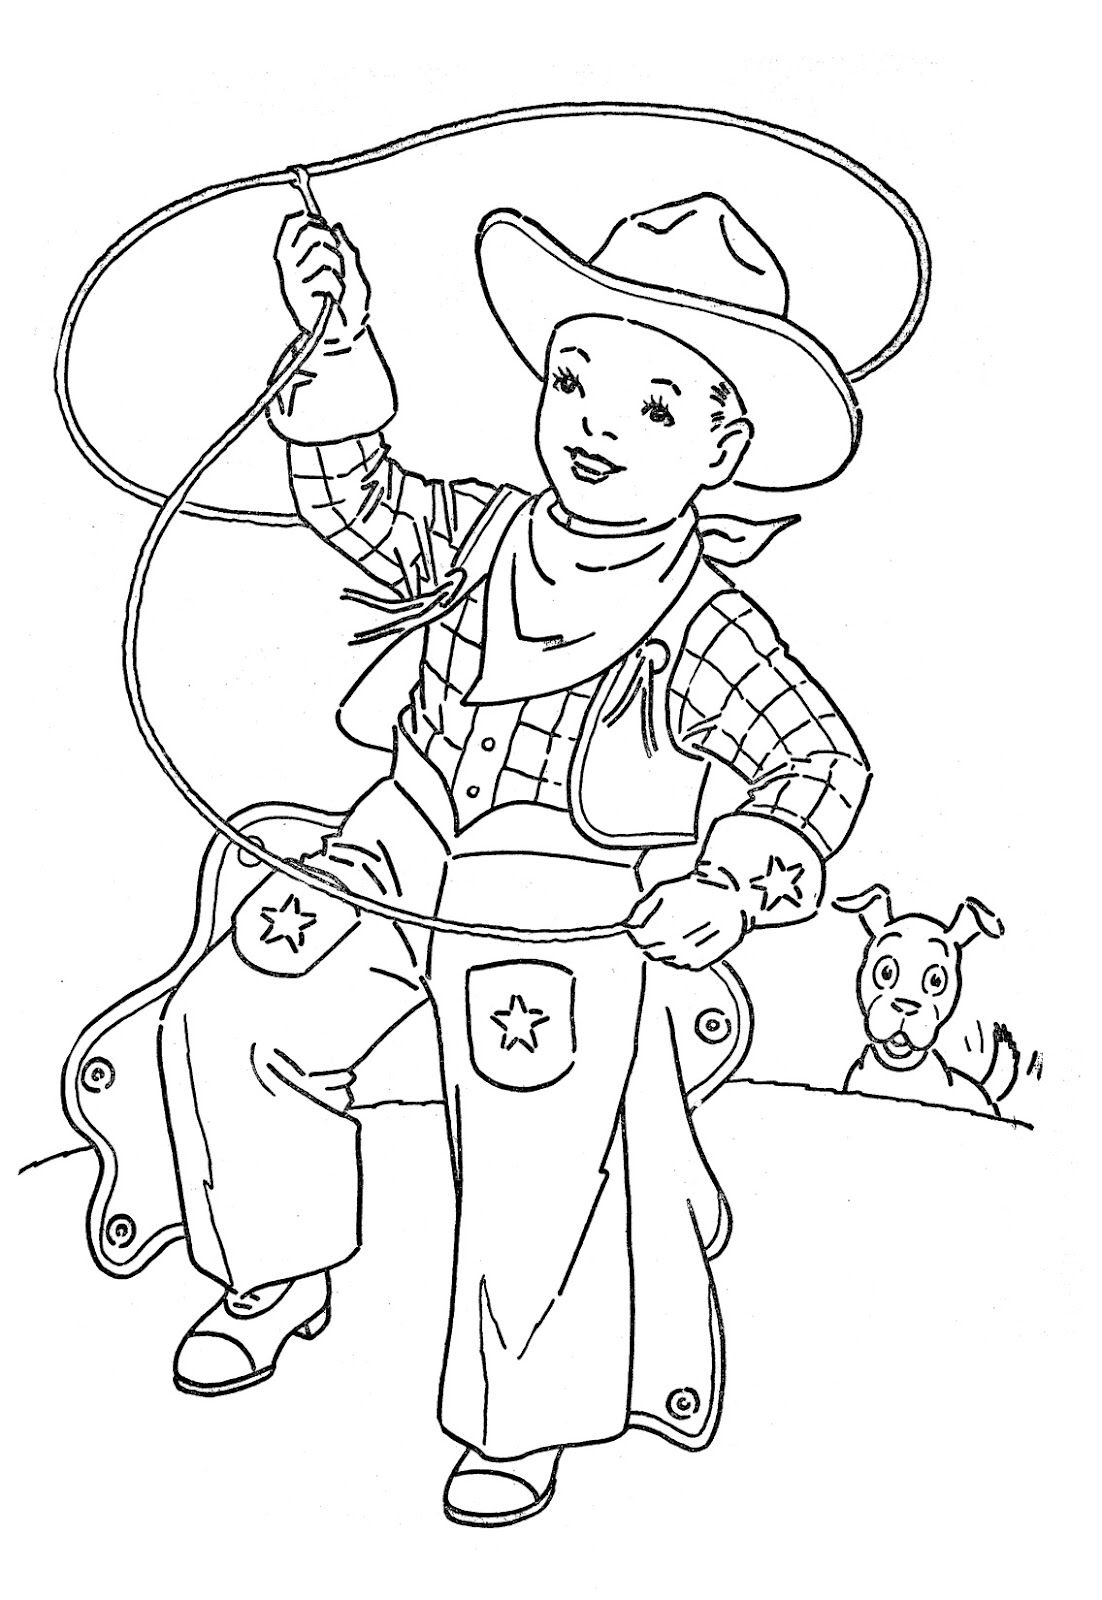 Western cowboy coloring pages ~ Pin by Kay Gravitt on Western boot coloring page. | Color ...